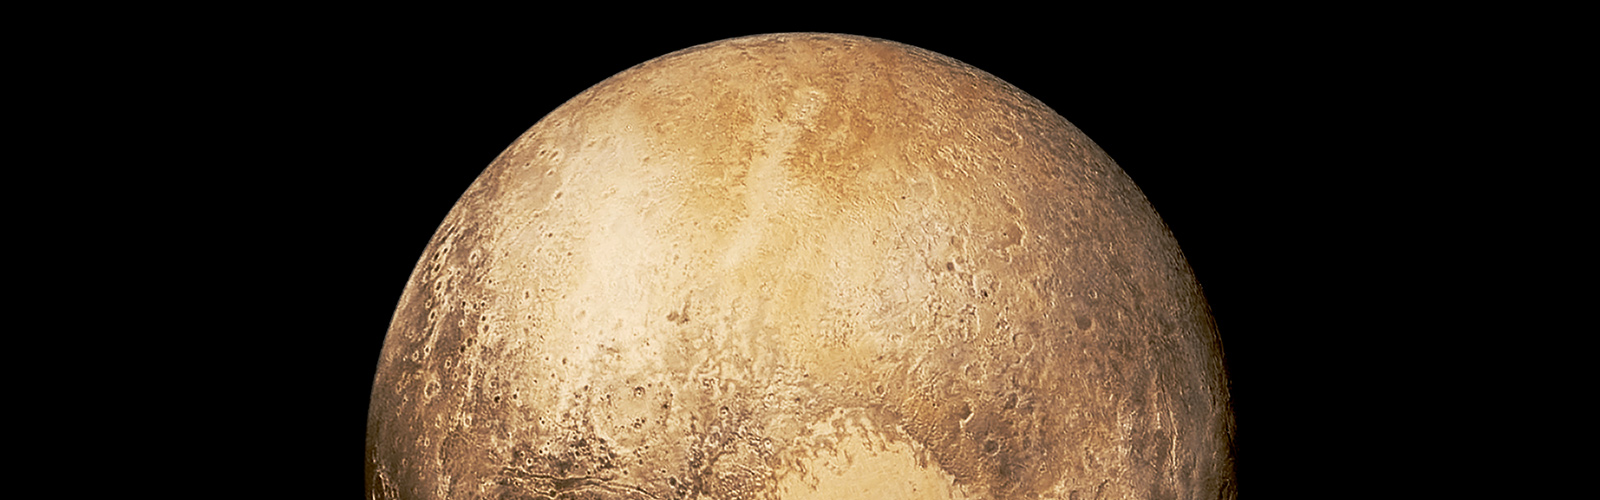 Overview | Pluto – NASA Solar System Exploration